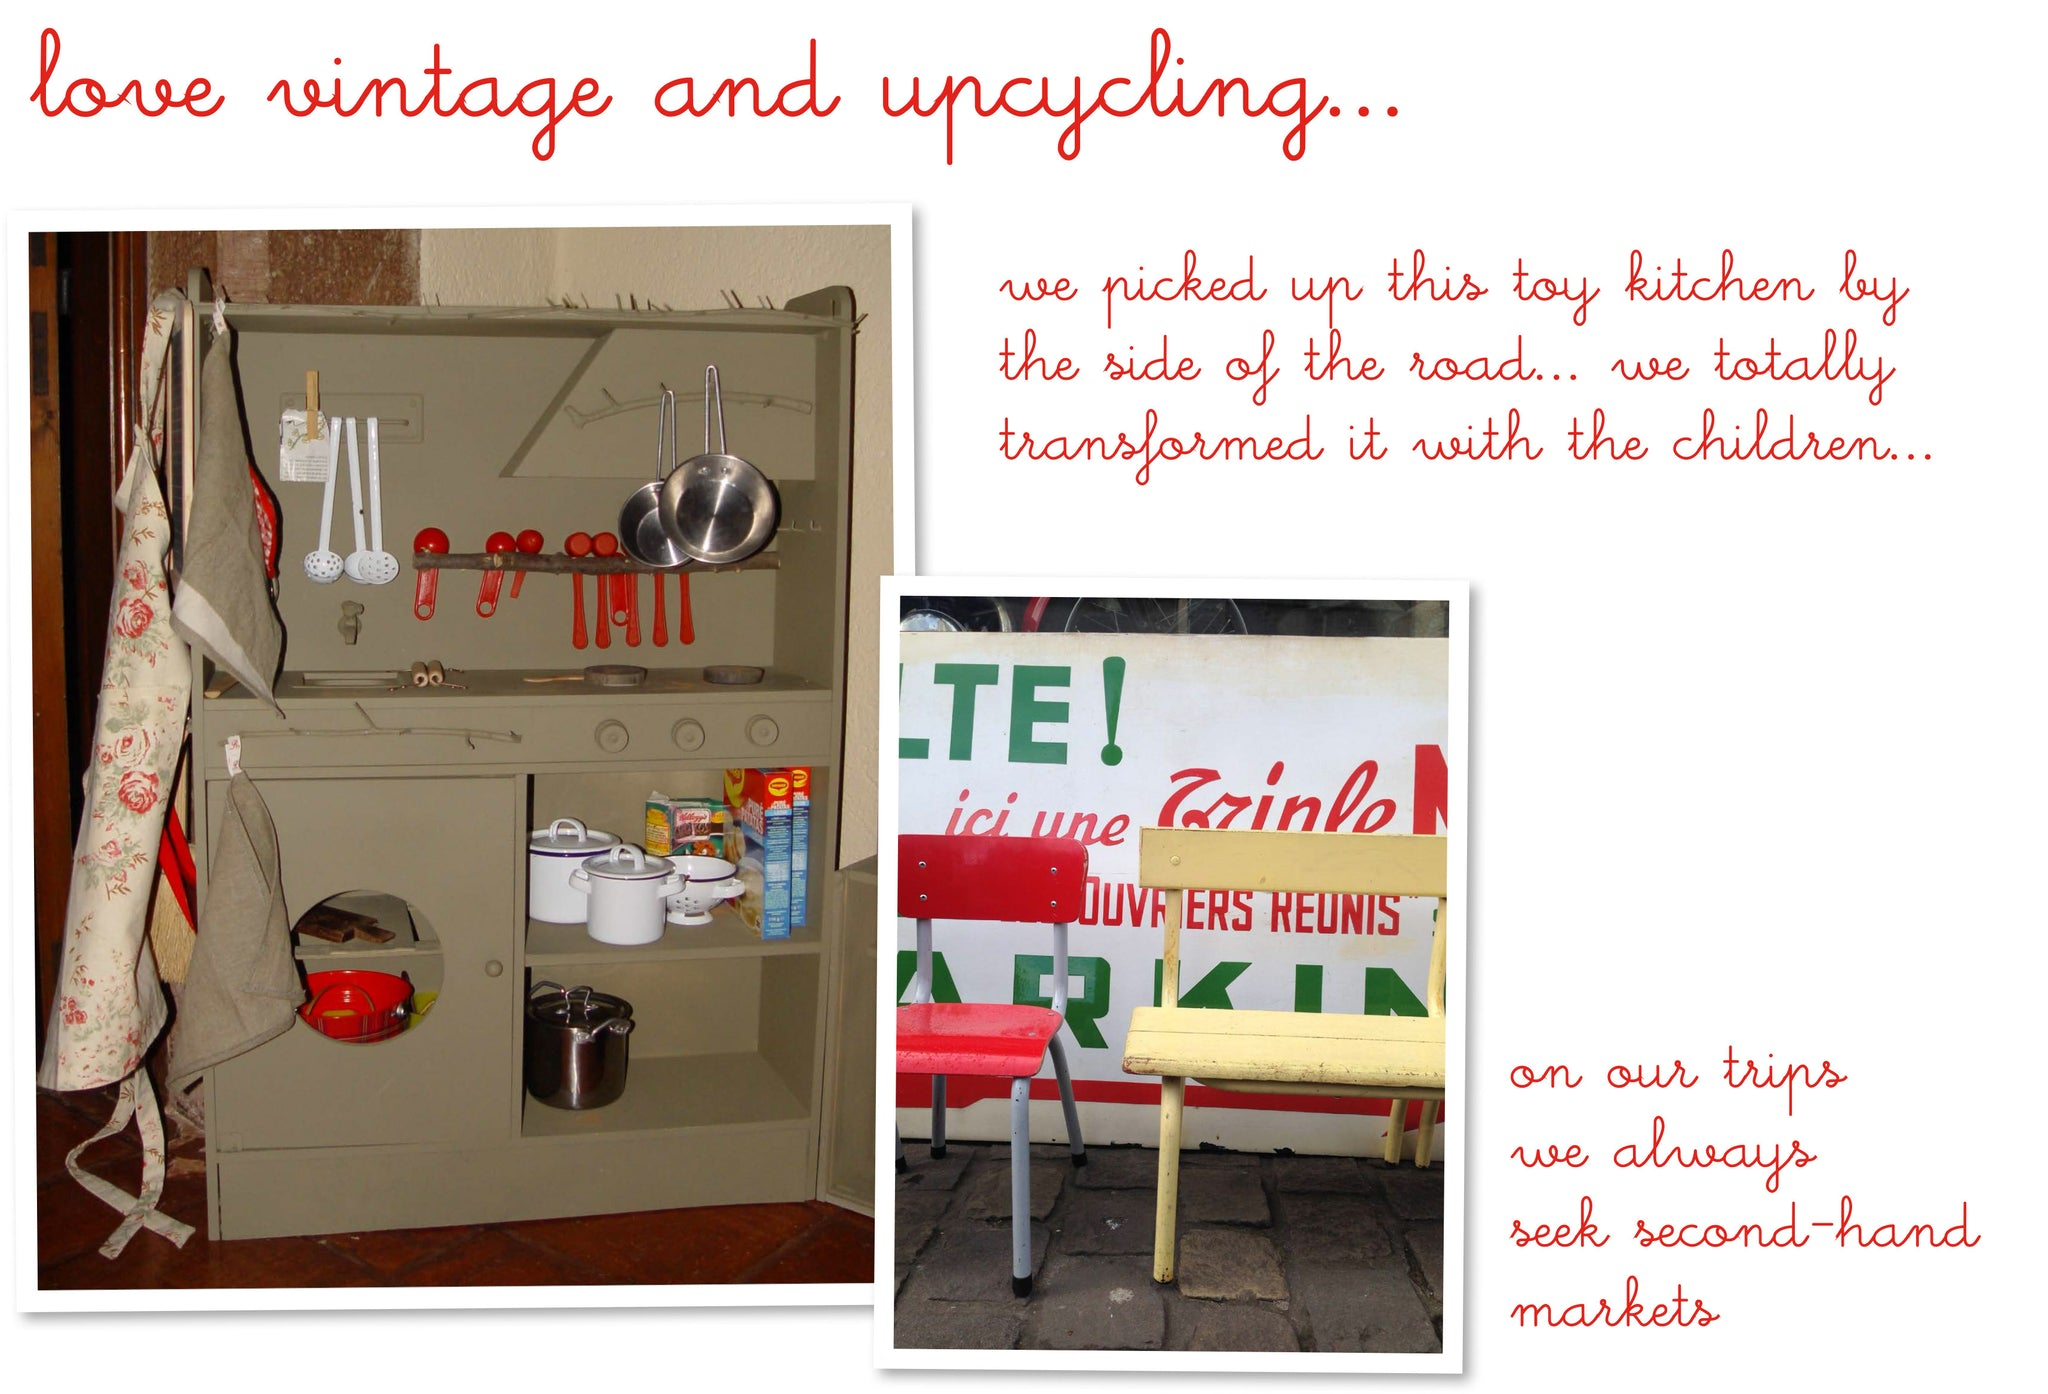 vintage and upcycling